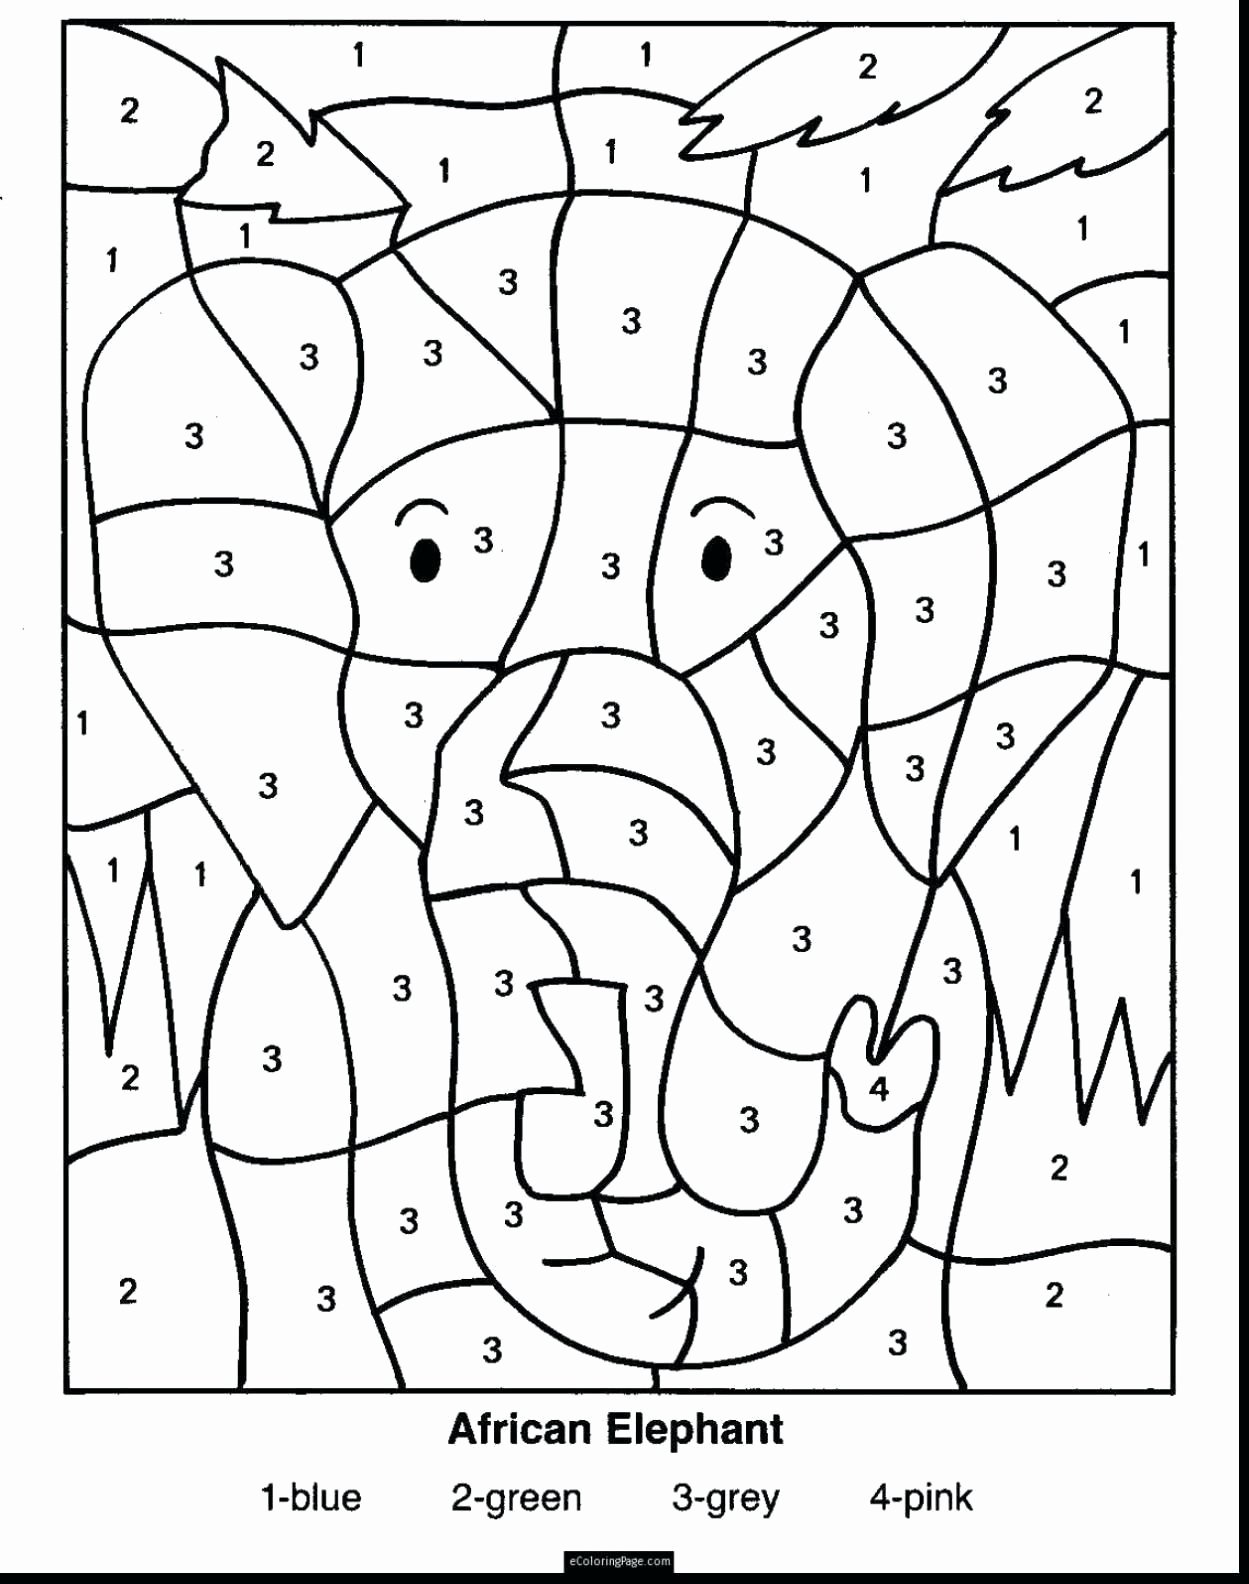 Multiplication Worksheets Third Grade Unique 3rd Grade Measurement Paw Patrol Coloring Pages Third Grade